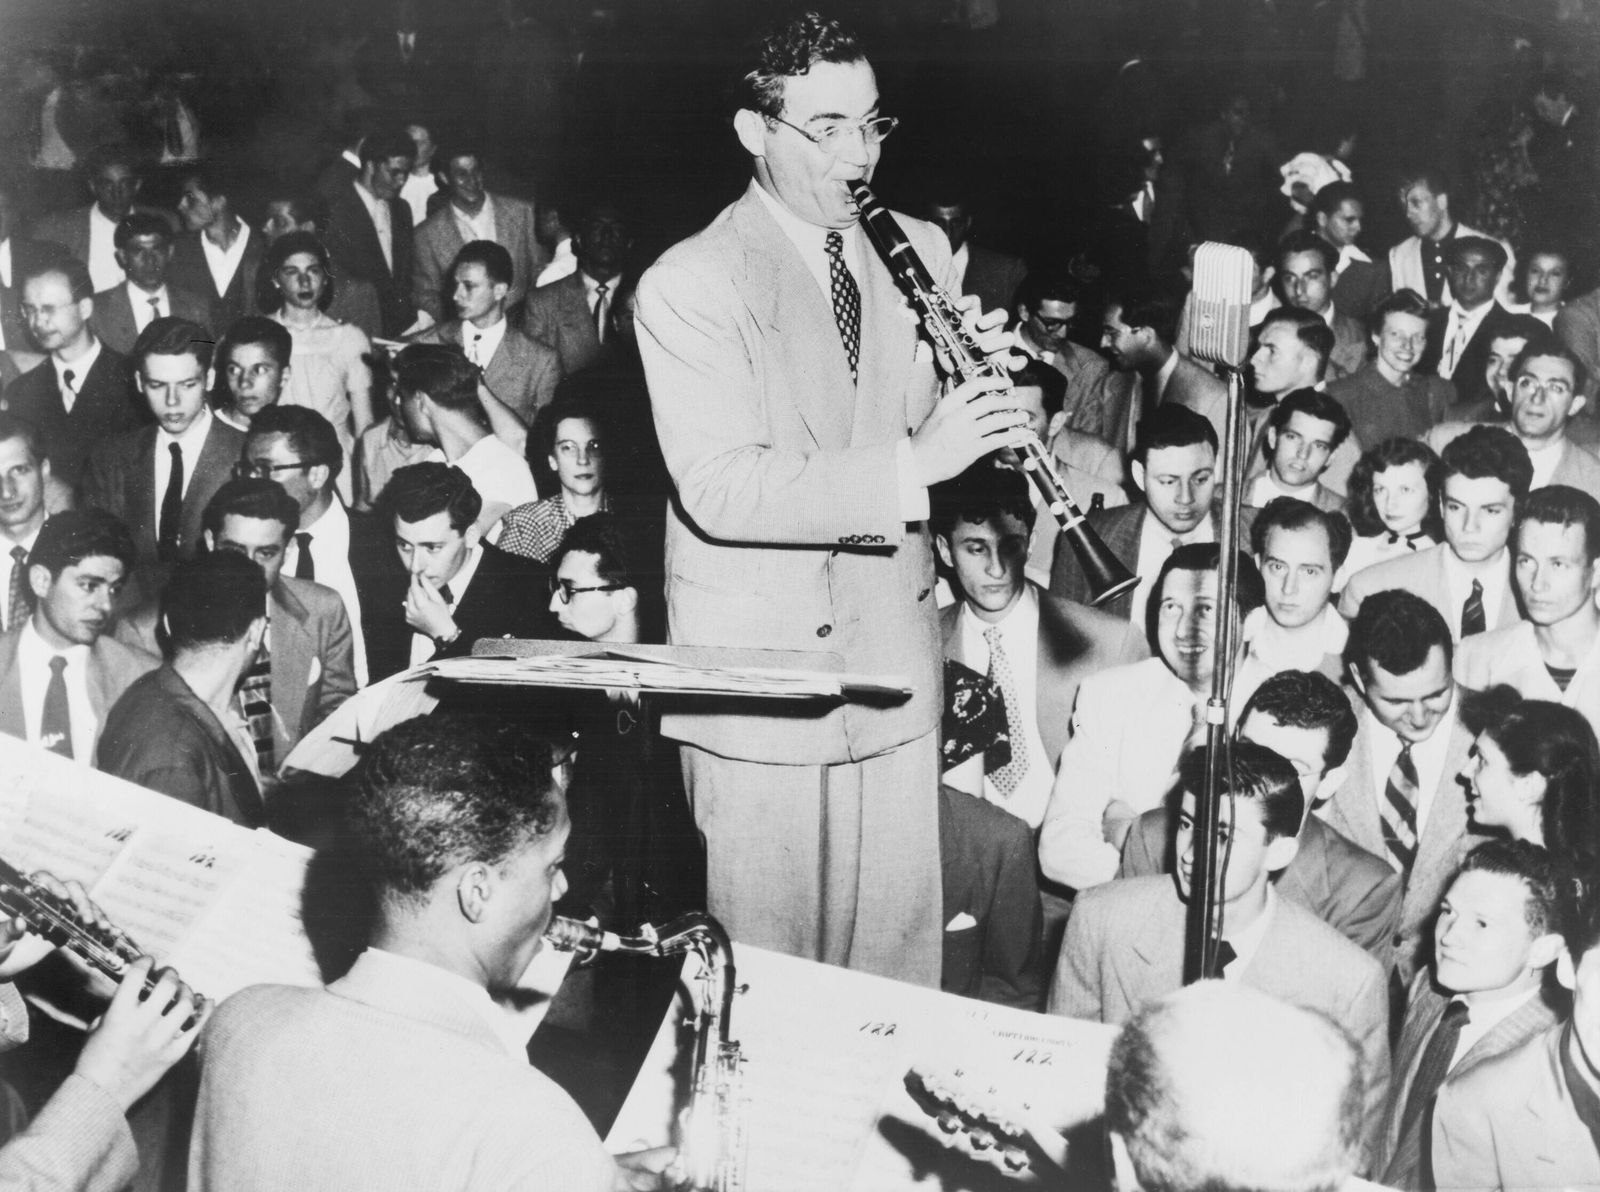 Benny Goodman (1909-86), playing clarinet, admirers look and listen. Goodman s Swing dance music was so loved, the dance